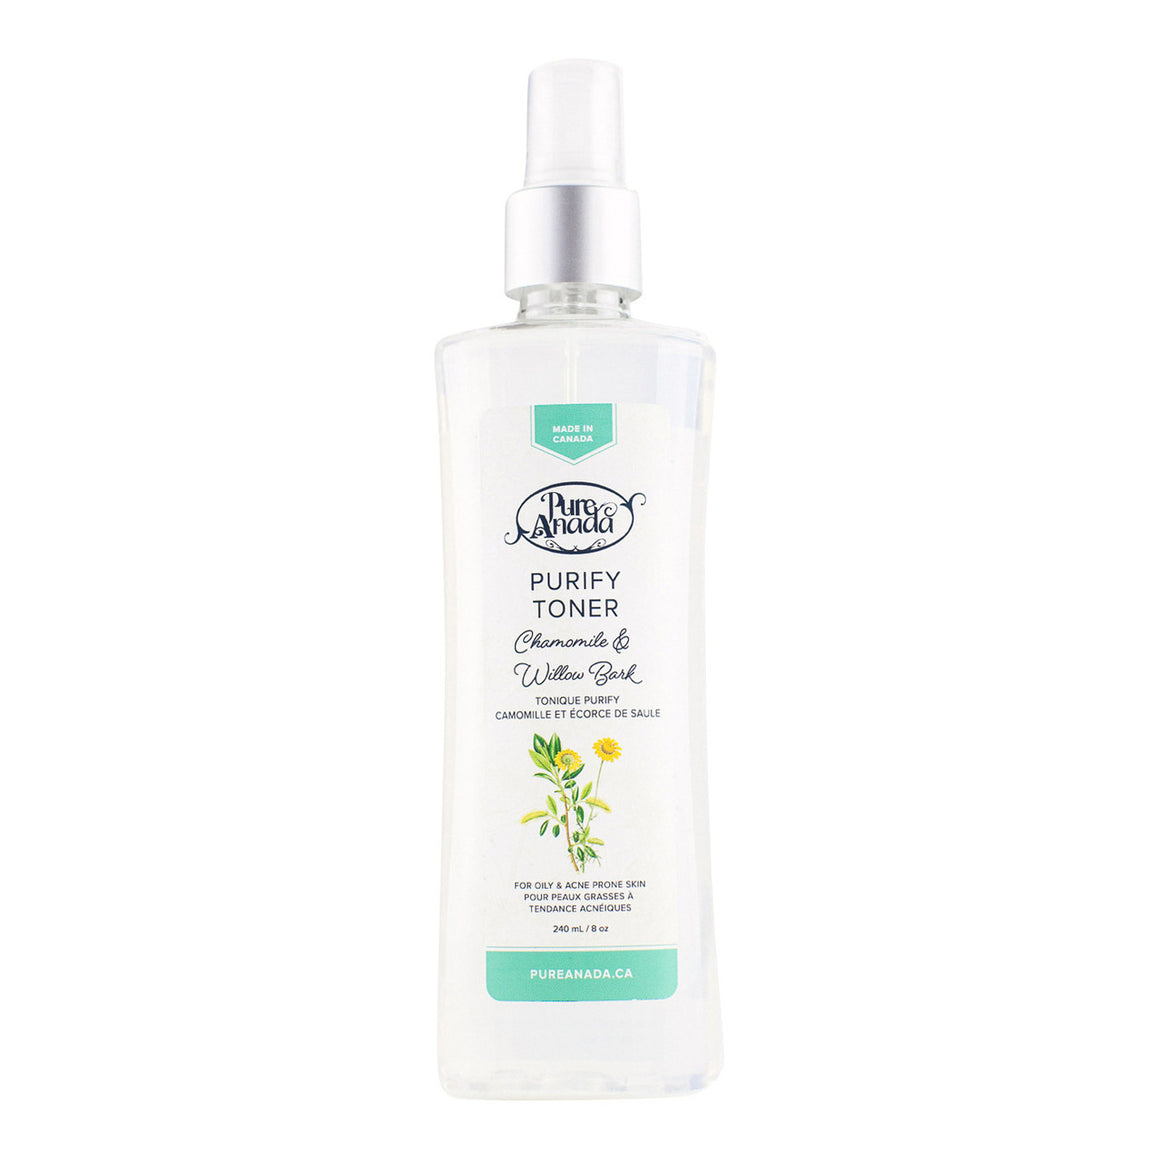 Purify Toner - Chamomile & Willow Bark 240ml